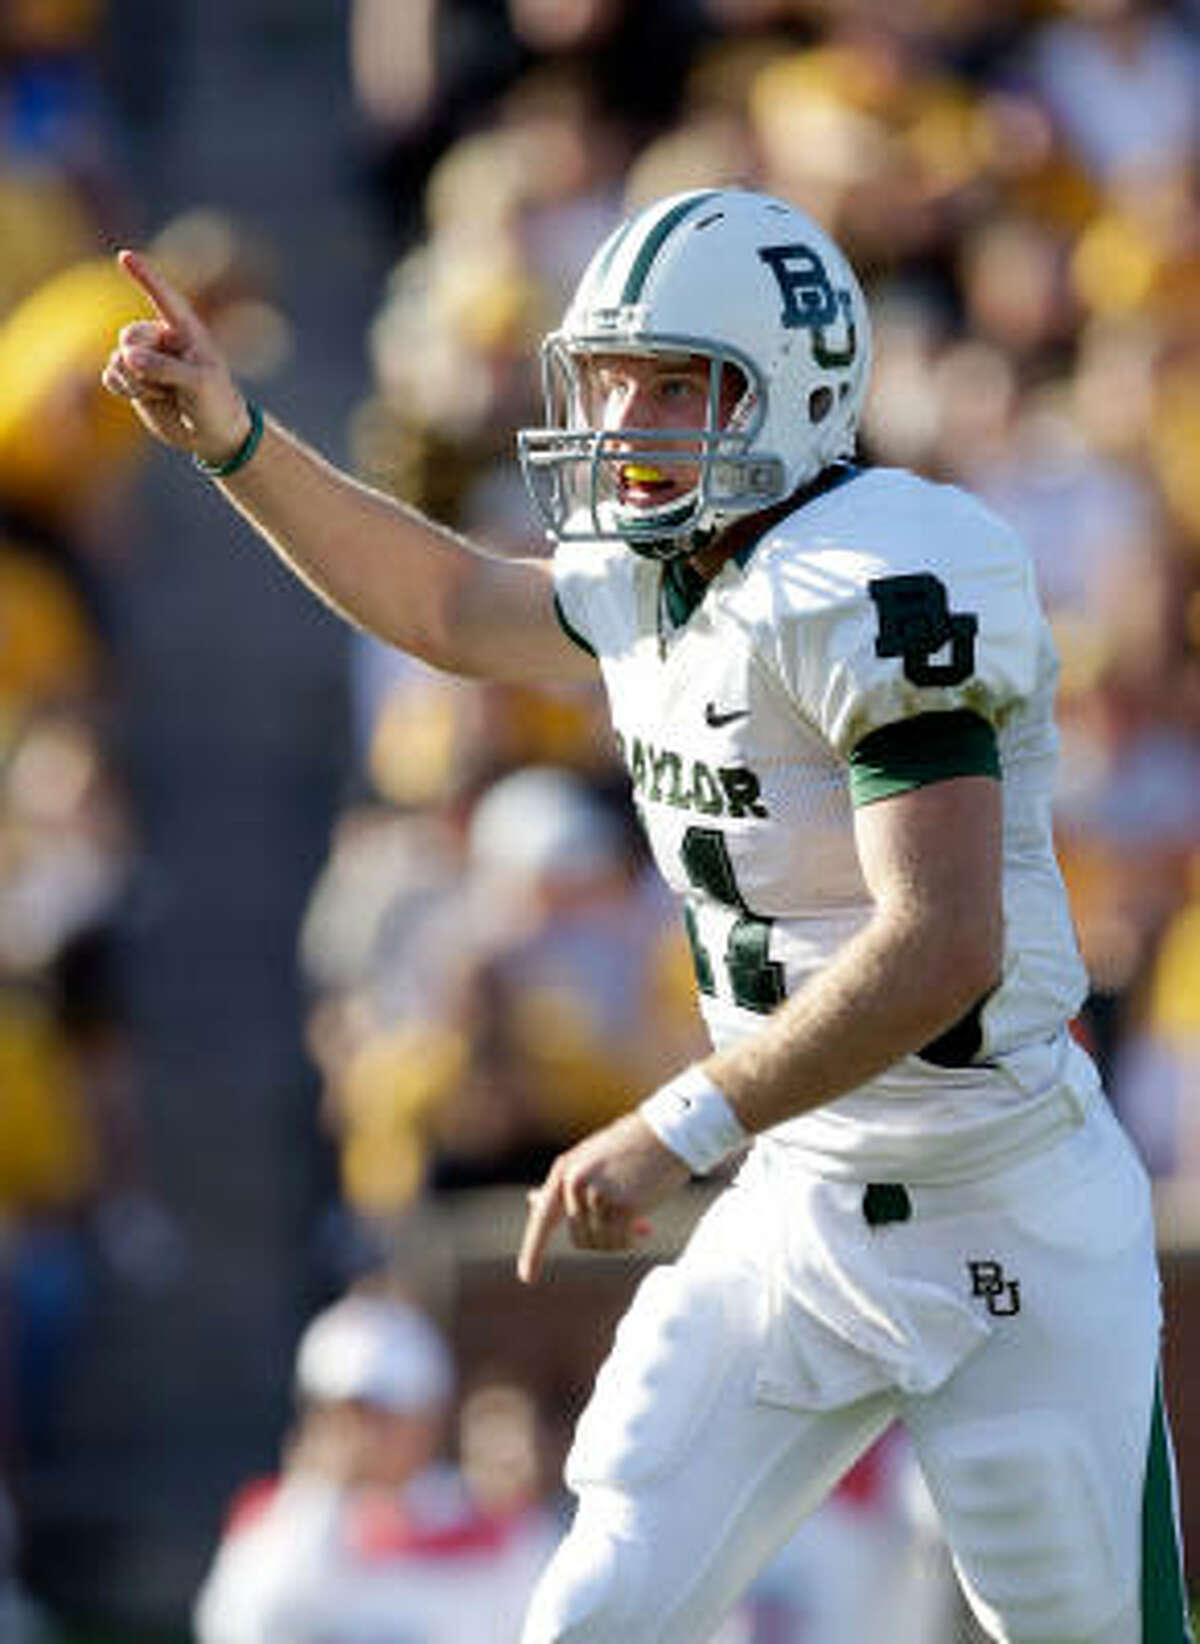 Baylor quarterback Nick Florence reacts after throwing for a touchdown against Missouri during Saturday's game in Columbia, Missouri.